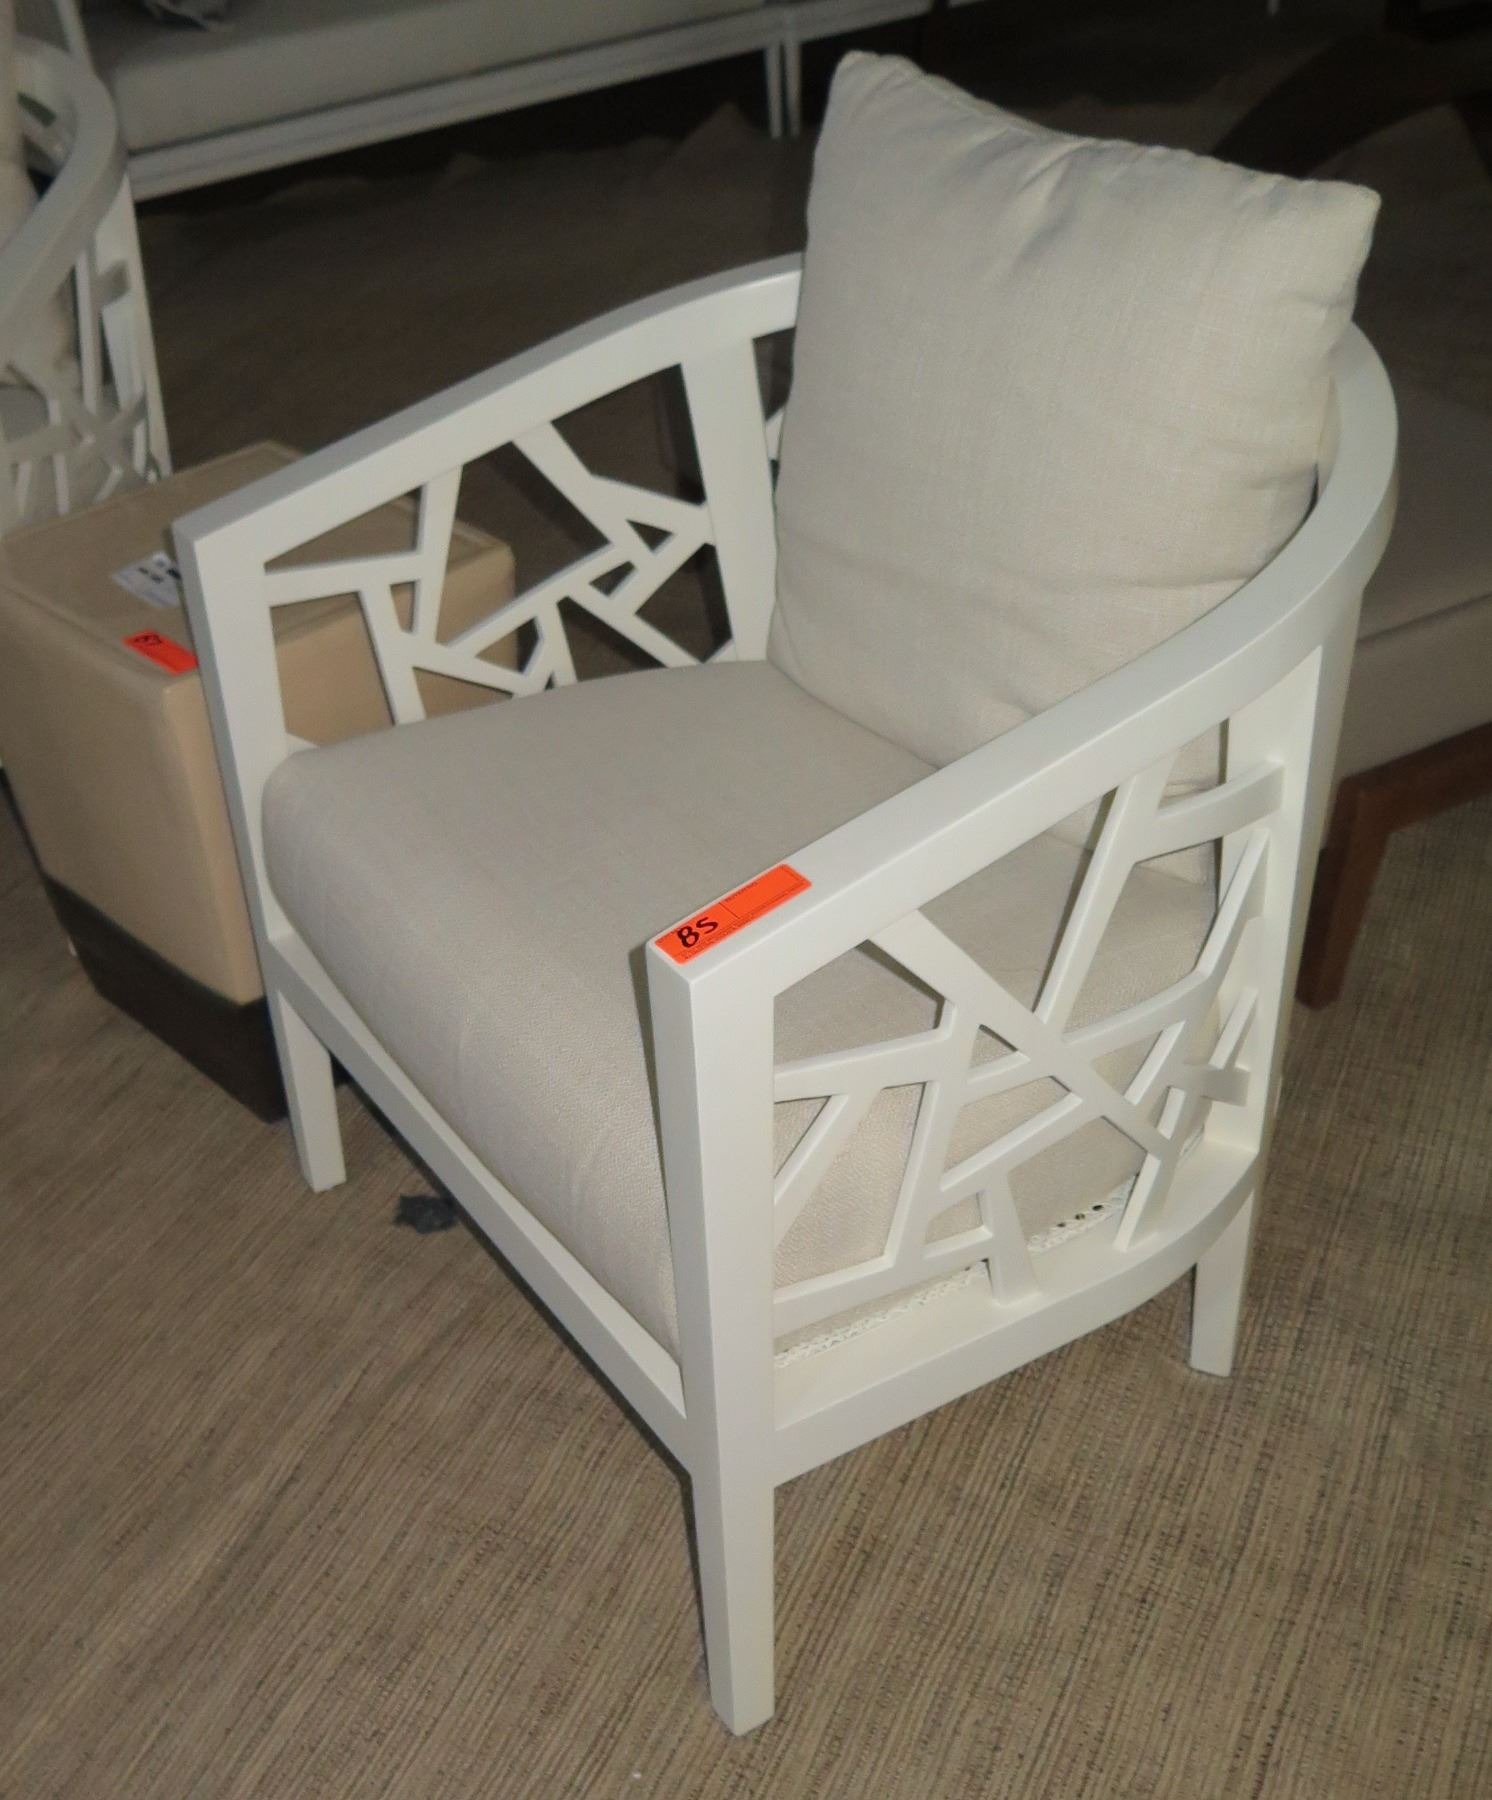 Crate And Barrel Rocking Chair White Crate Barrel Lounge Chair W Cut Out Frame White Linen